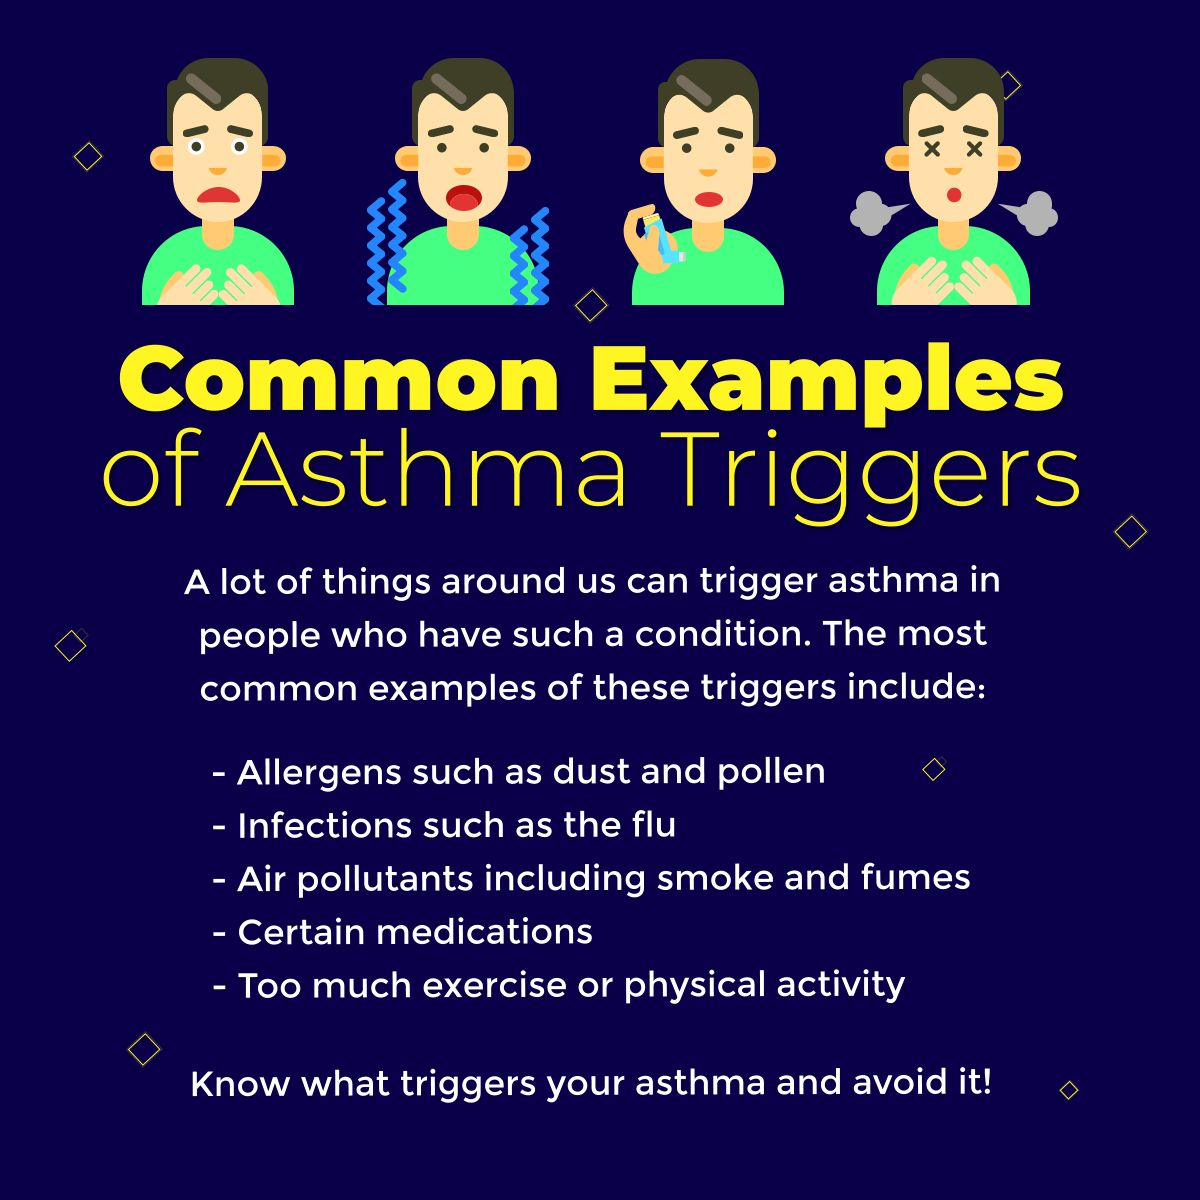 Common Examples of Asthma Triggers AsthmaTriggers